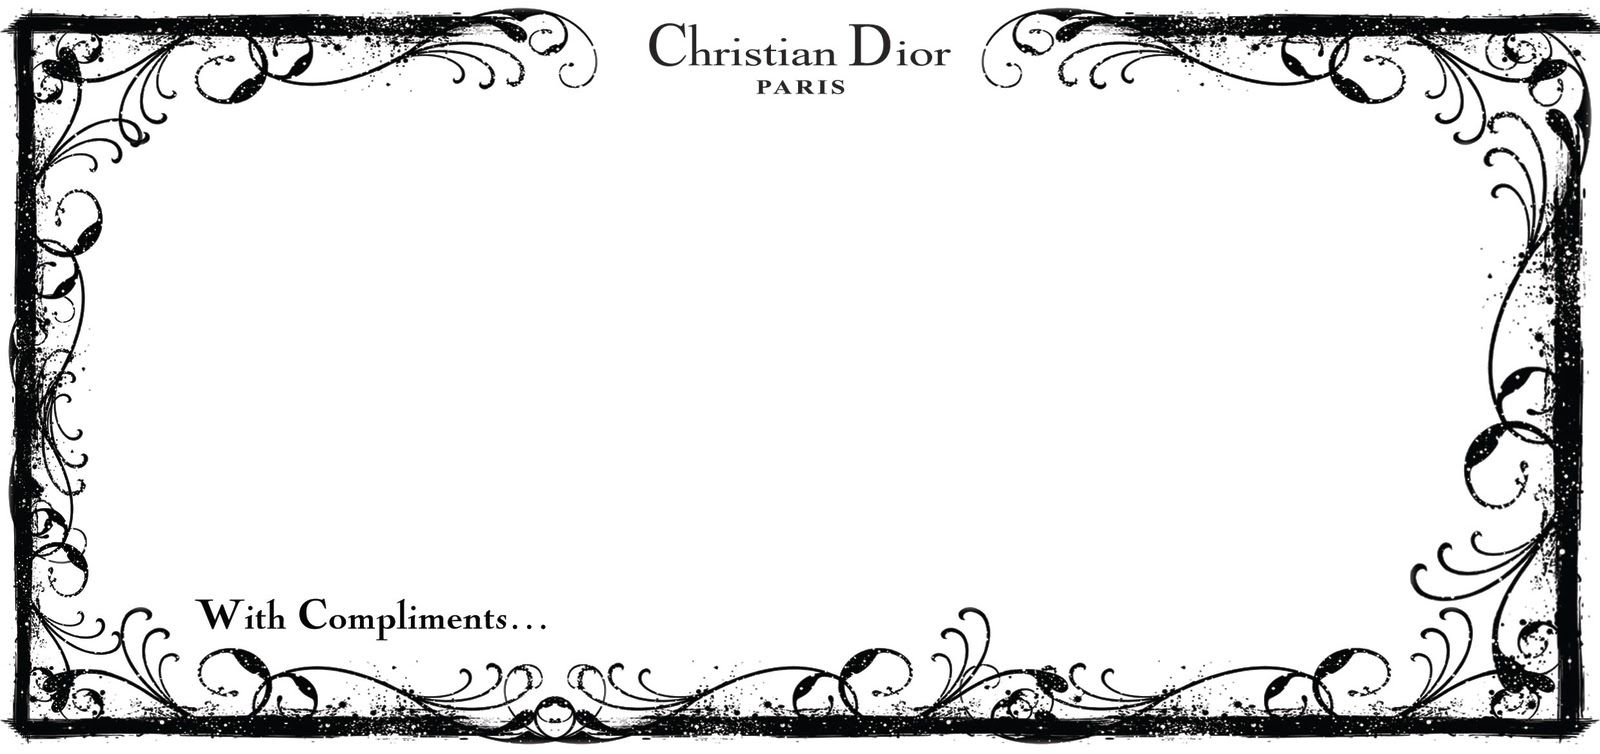 dior business card - Google Search | Businesses and startups ...